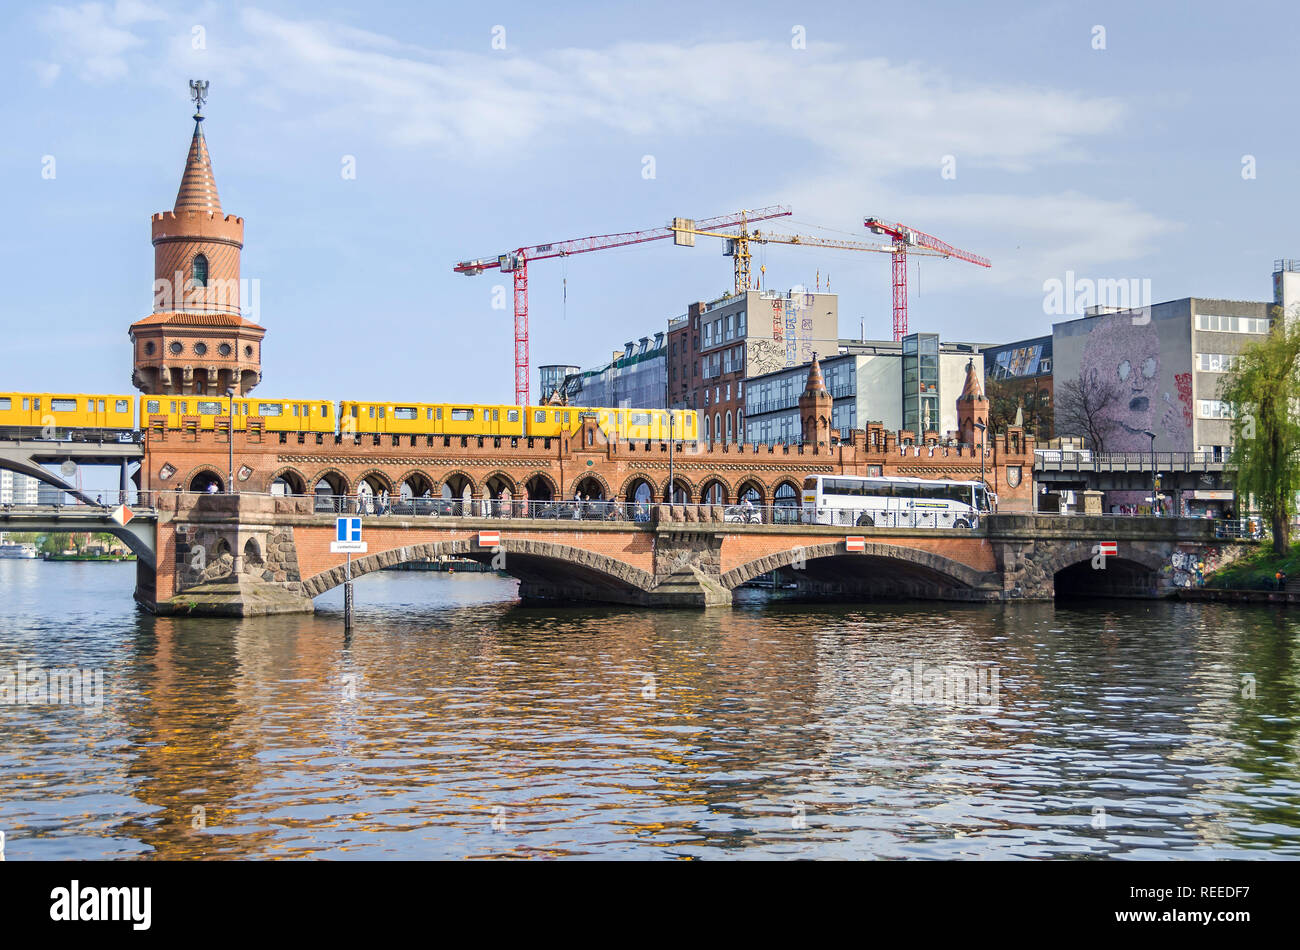 Berlin, Germany - April 22, 2018: Construction boom in the center of Berlin. View of the Brick Gothic Oberbaum Bridge with an U-Bahn train crossing it - Stock Image